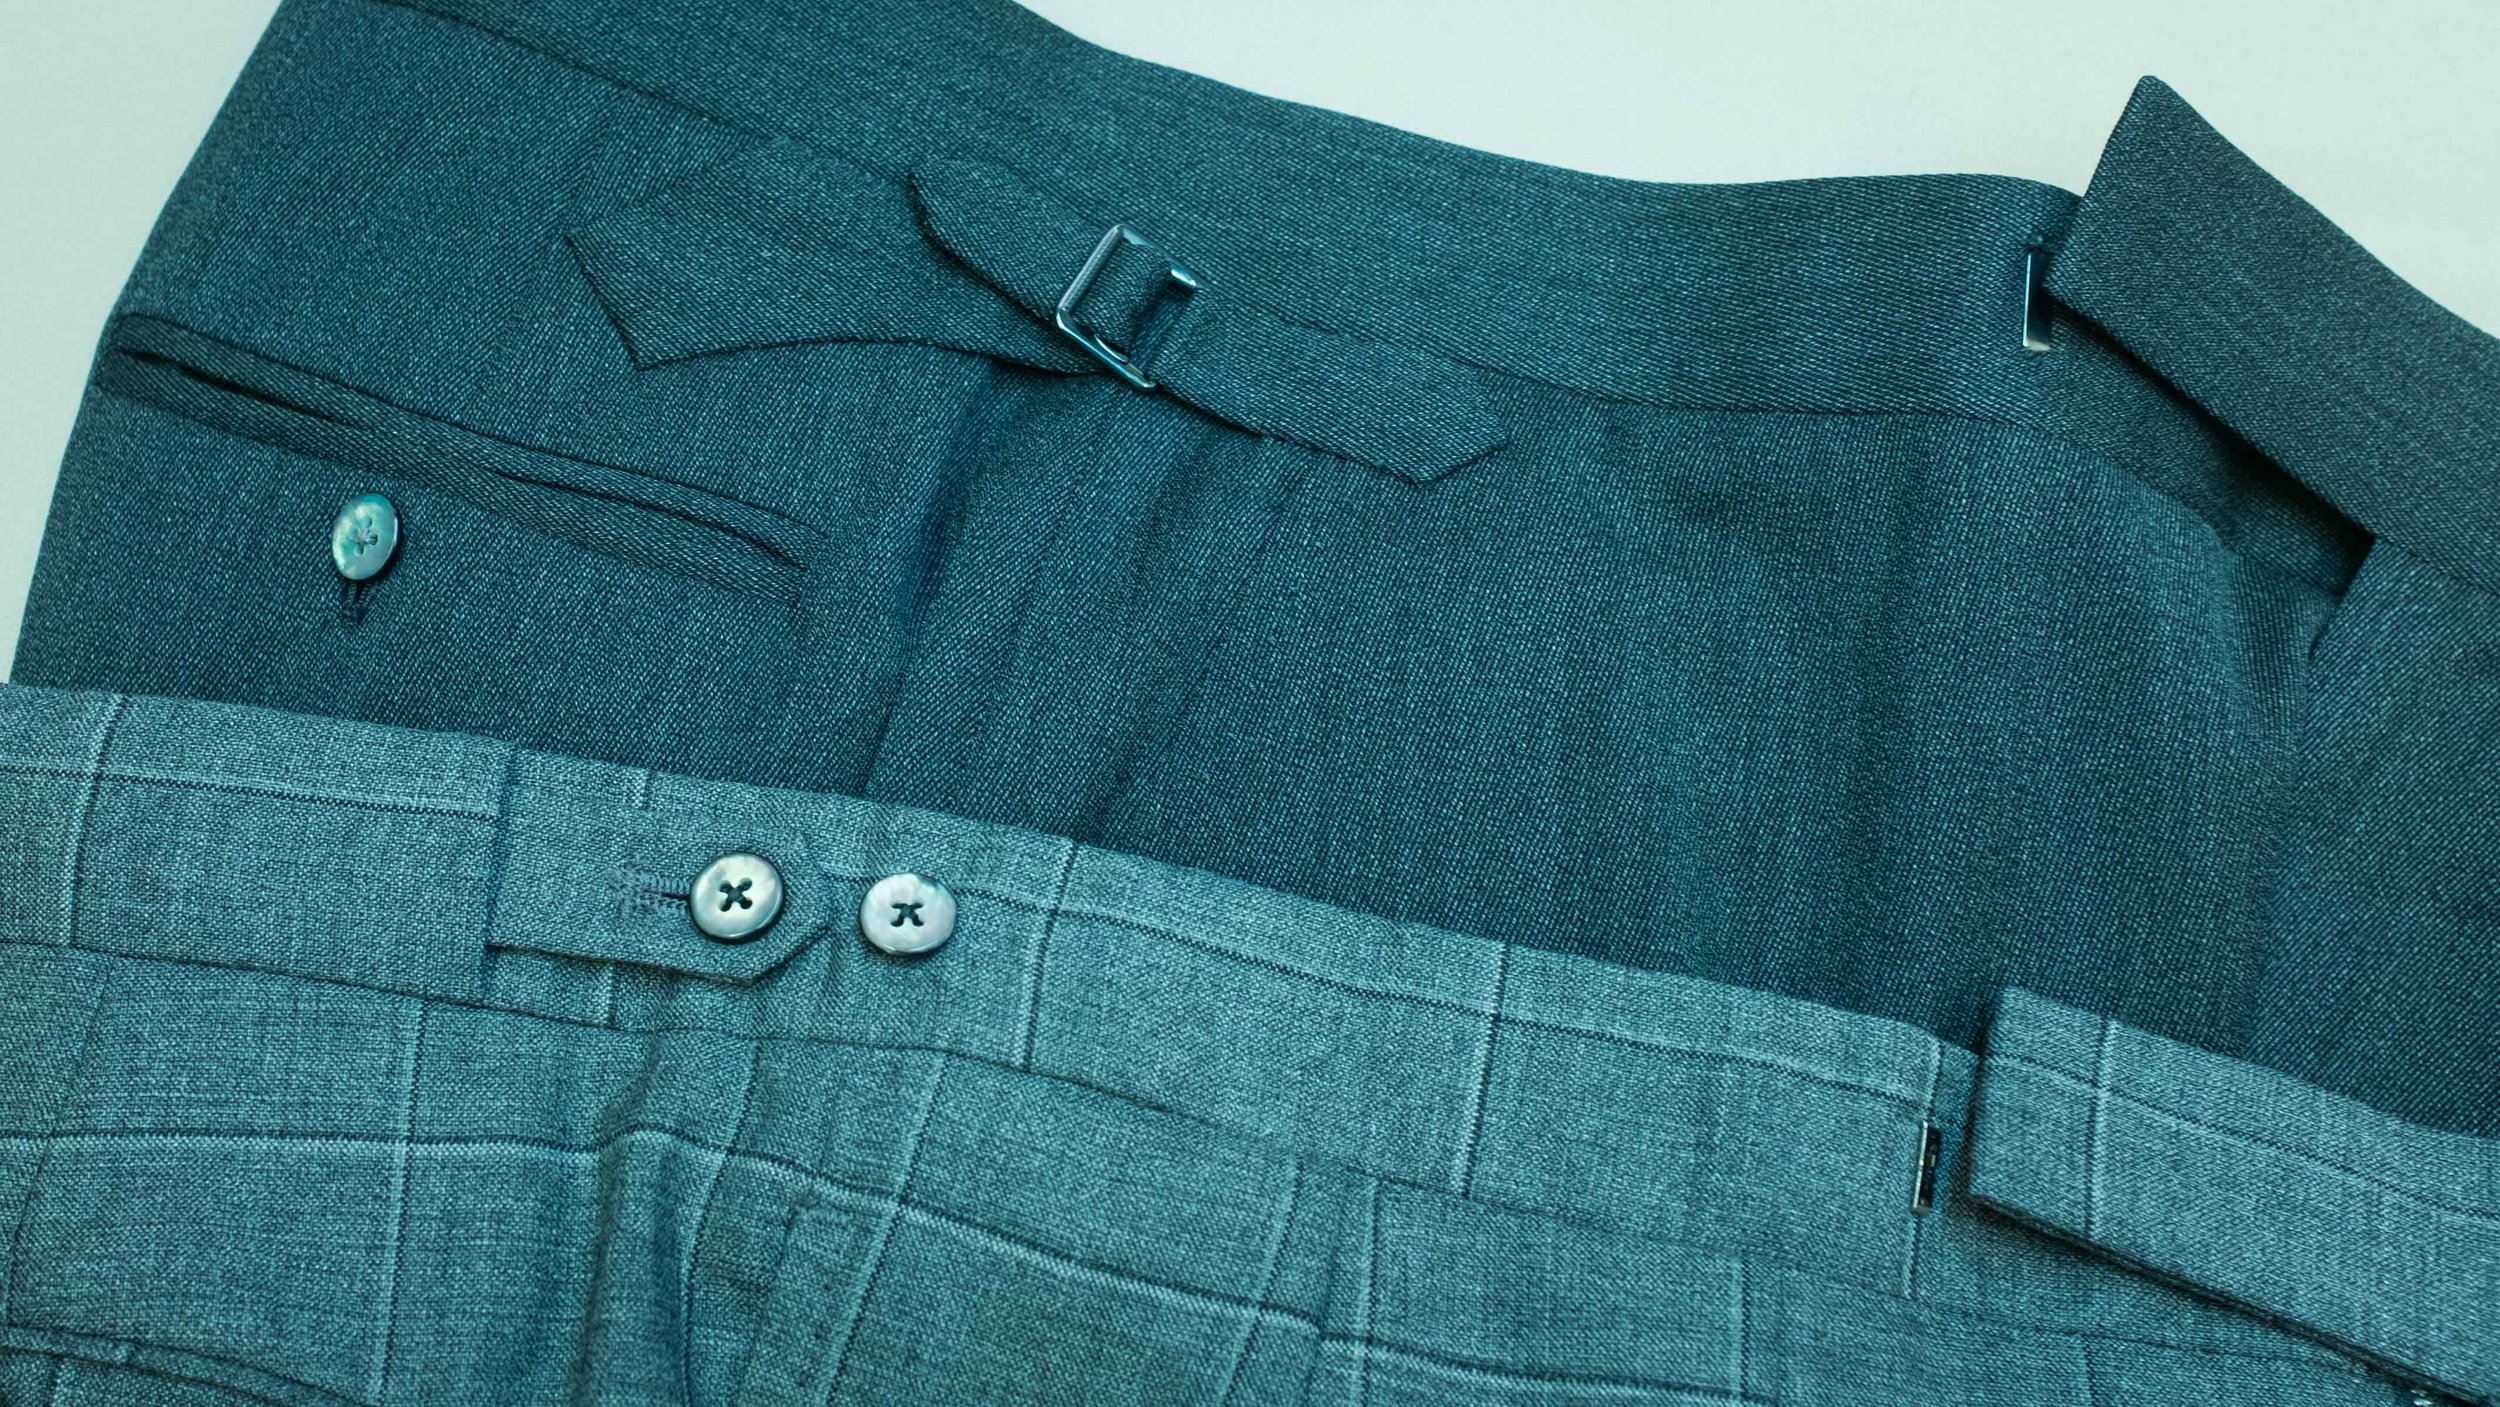 Two classic finishing alternatives to belt loops: the side tab and buckle and DAKS waistband